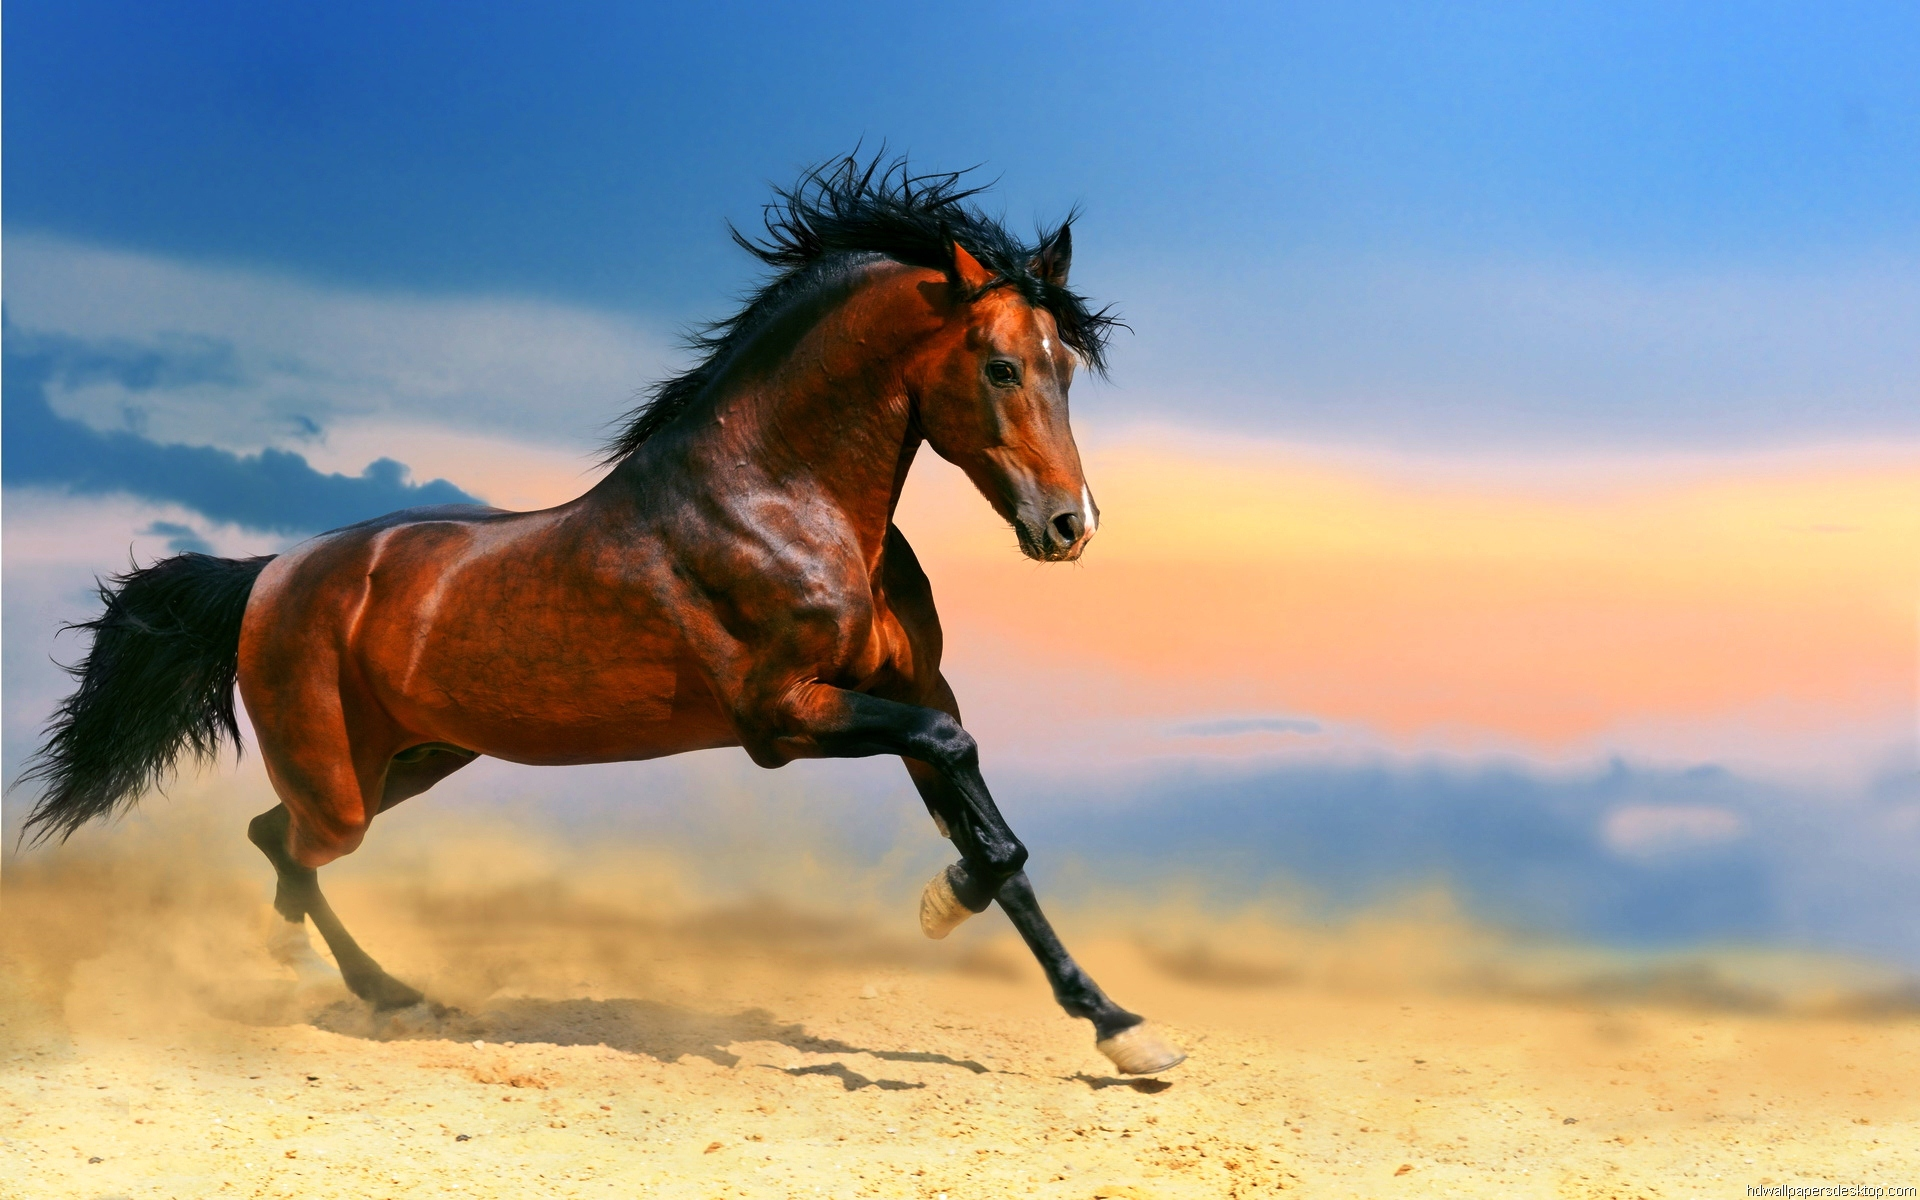 Free Horse Wallpaper Wild Horse Running High Quality 1920x1200 Download Hd Wallpaper Wallpapertip